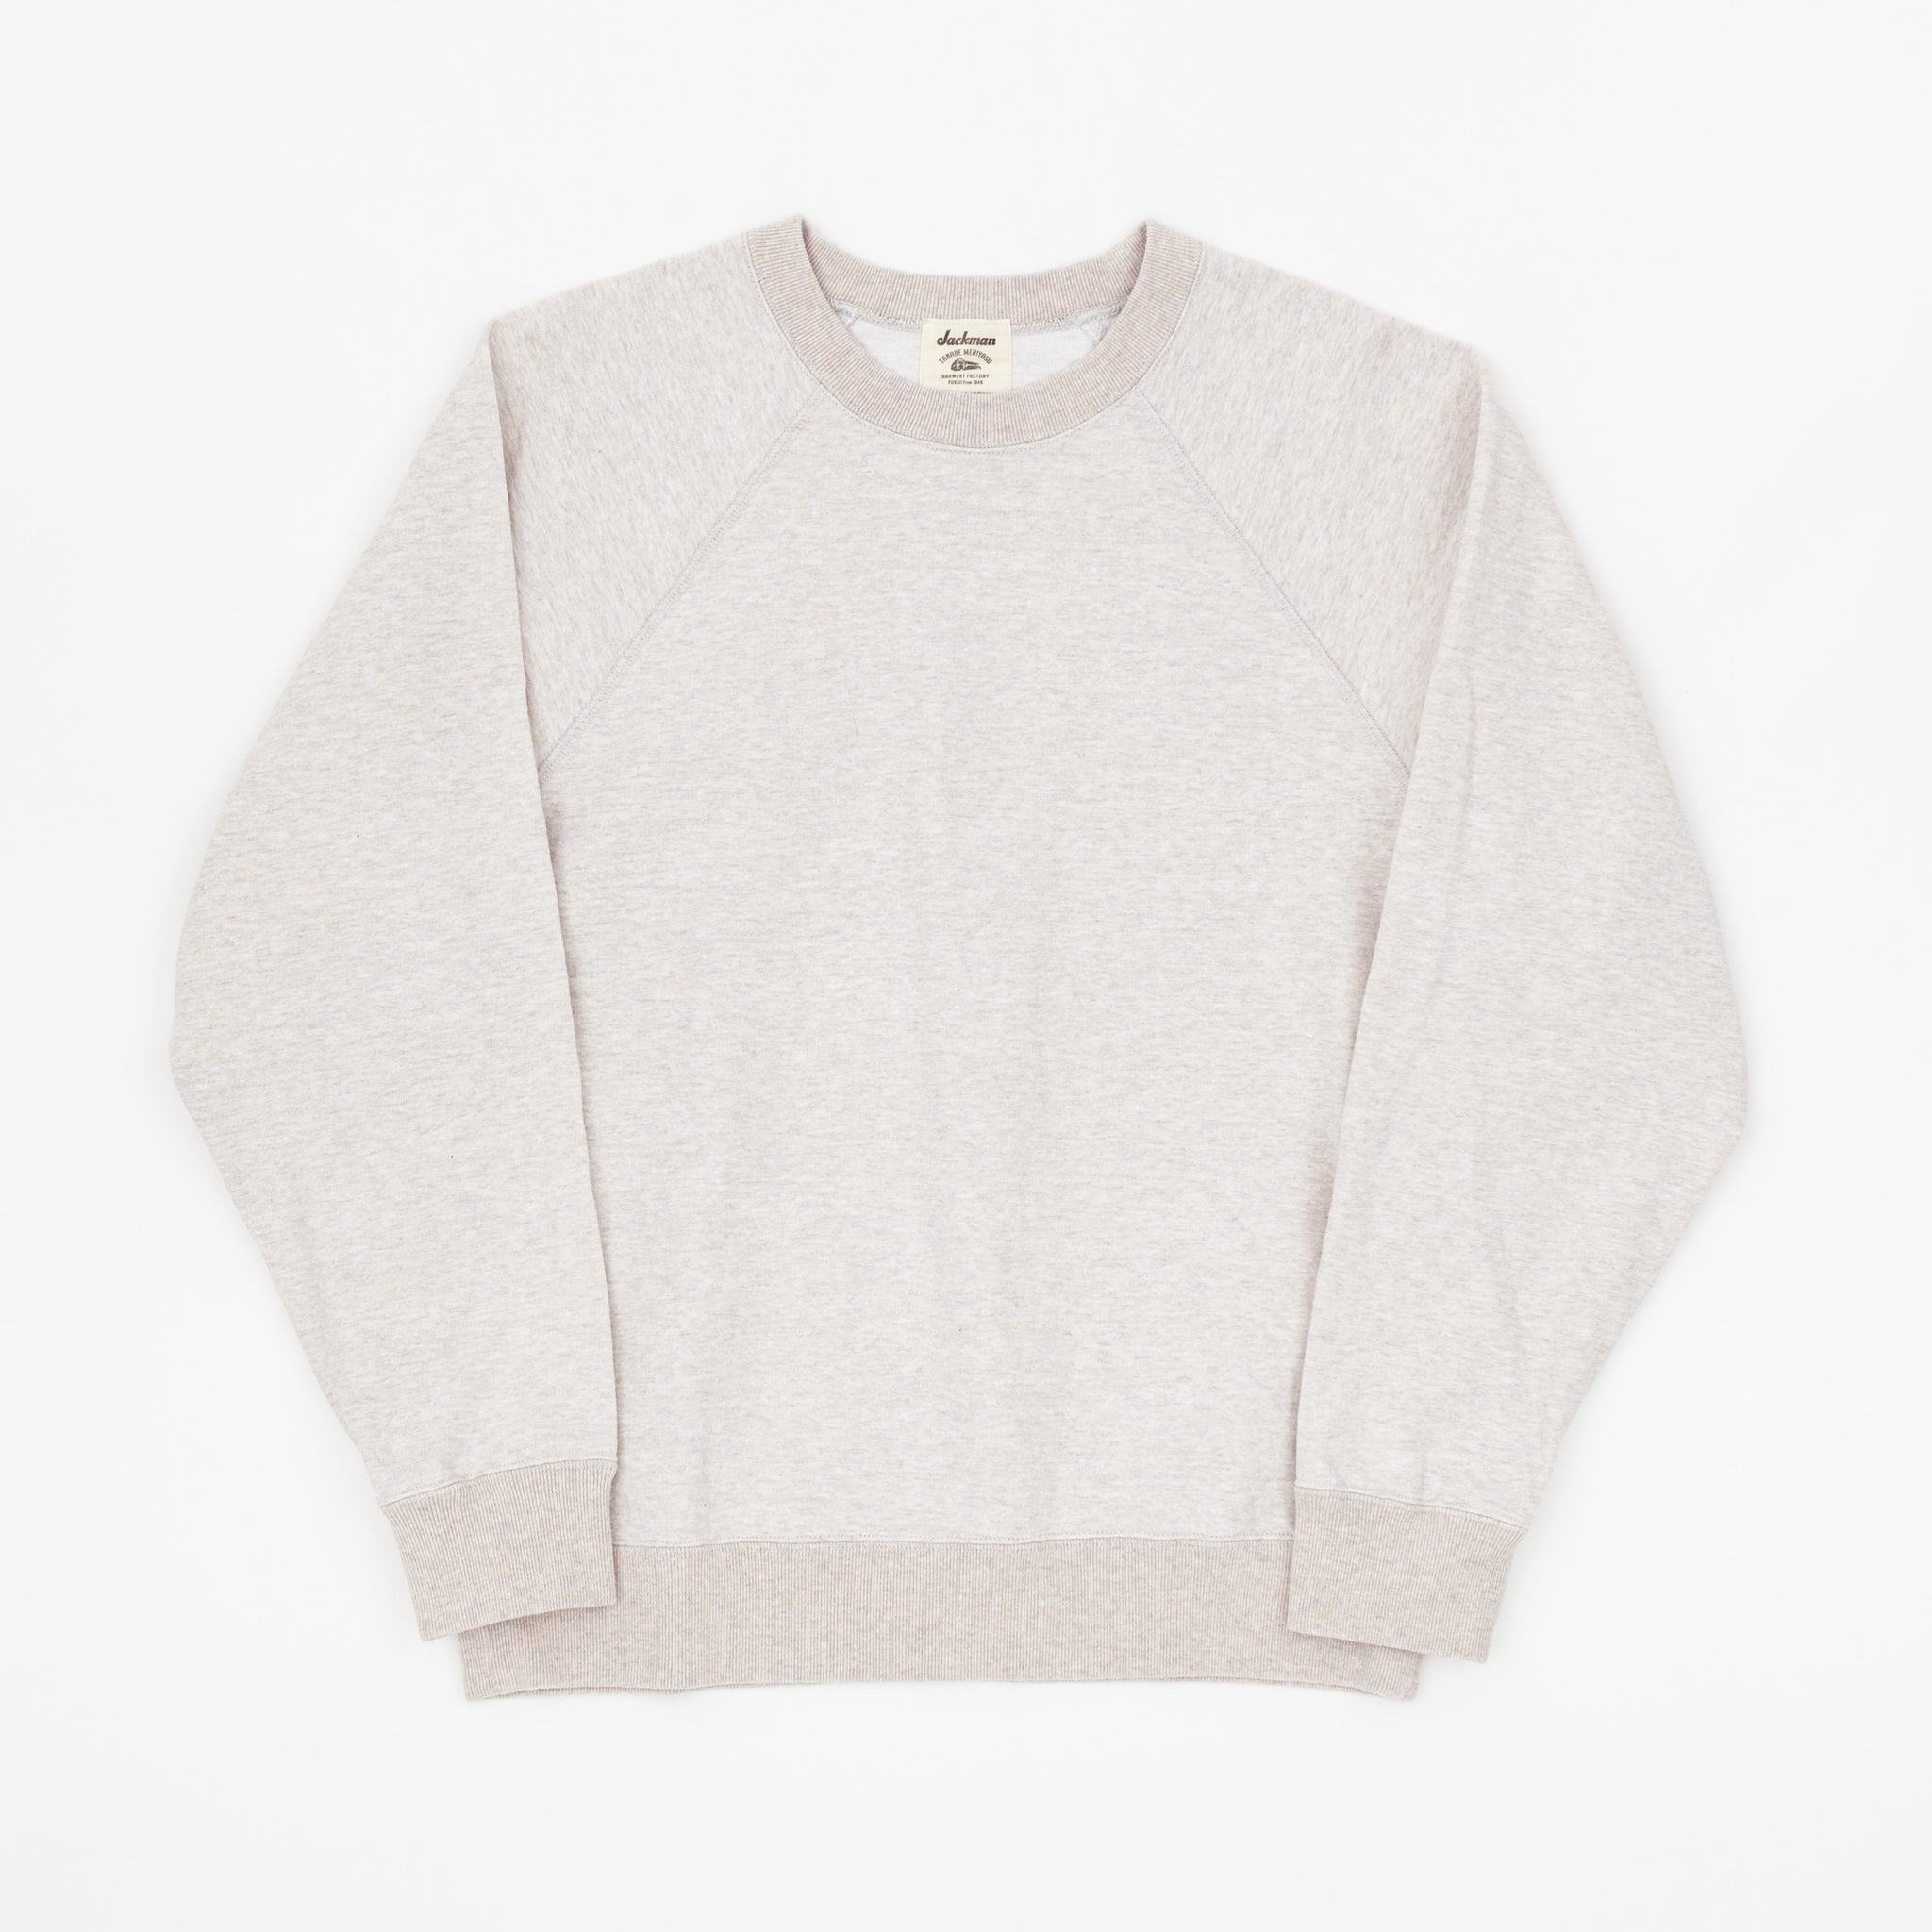 HIGH-DENSITY CREWNECK